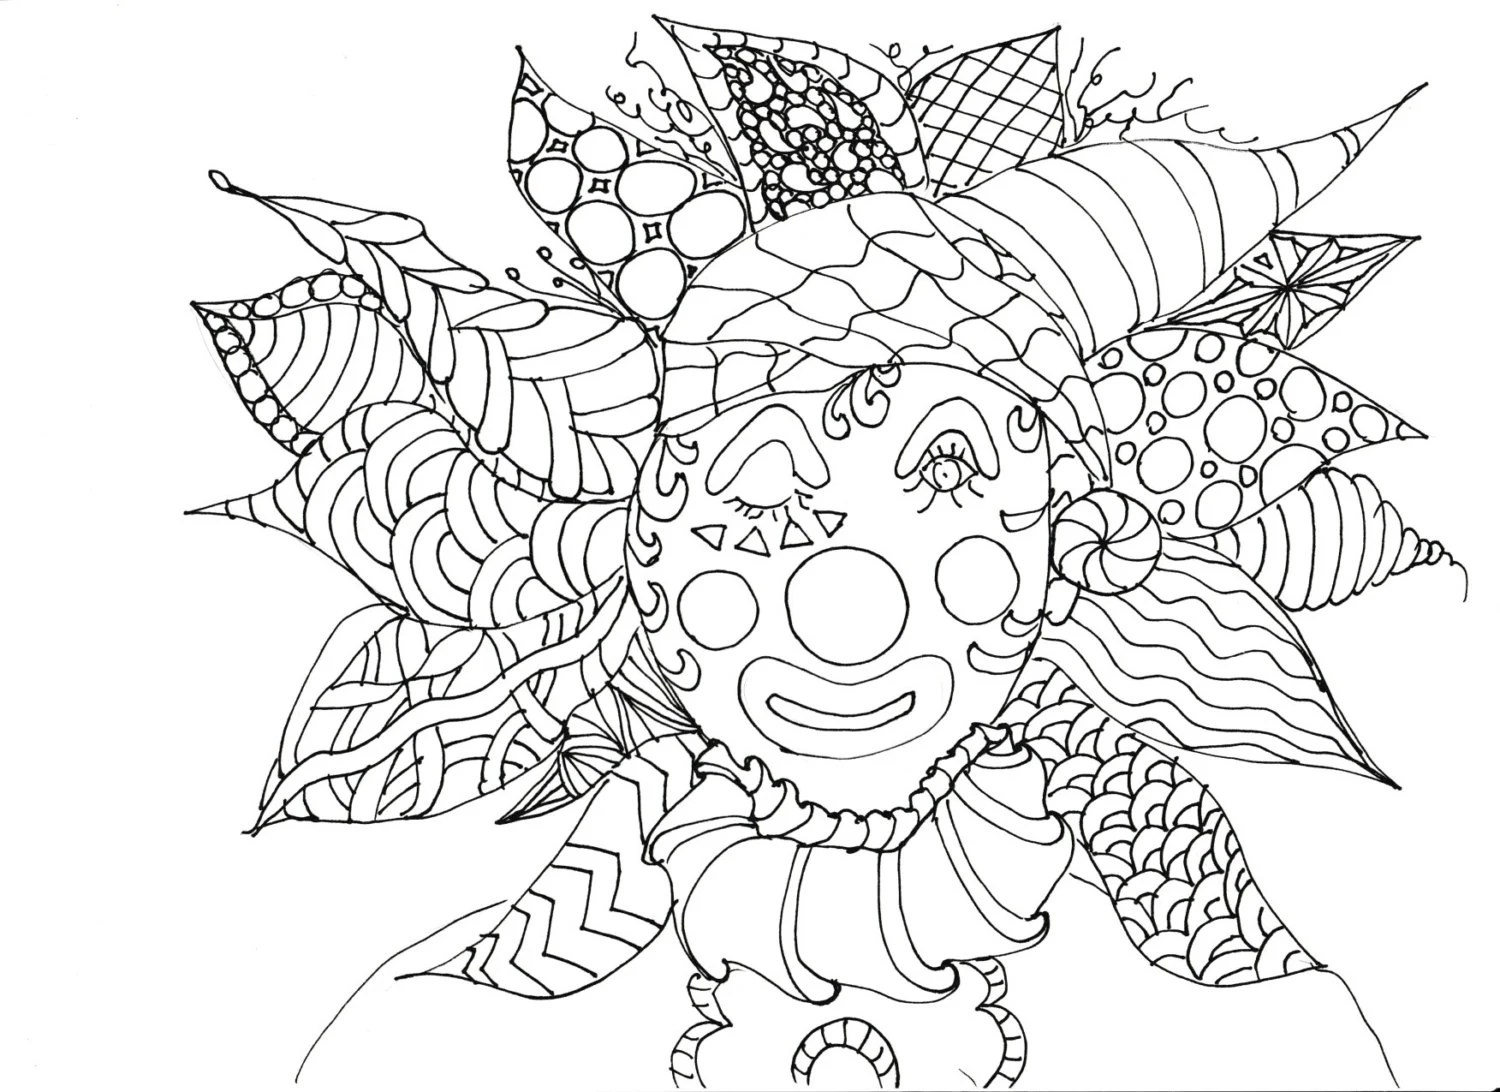 Coloring Pages, Printable Coloring Pages, Adult Coloring